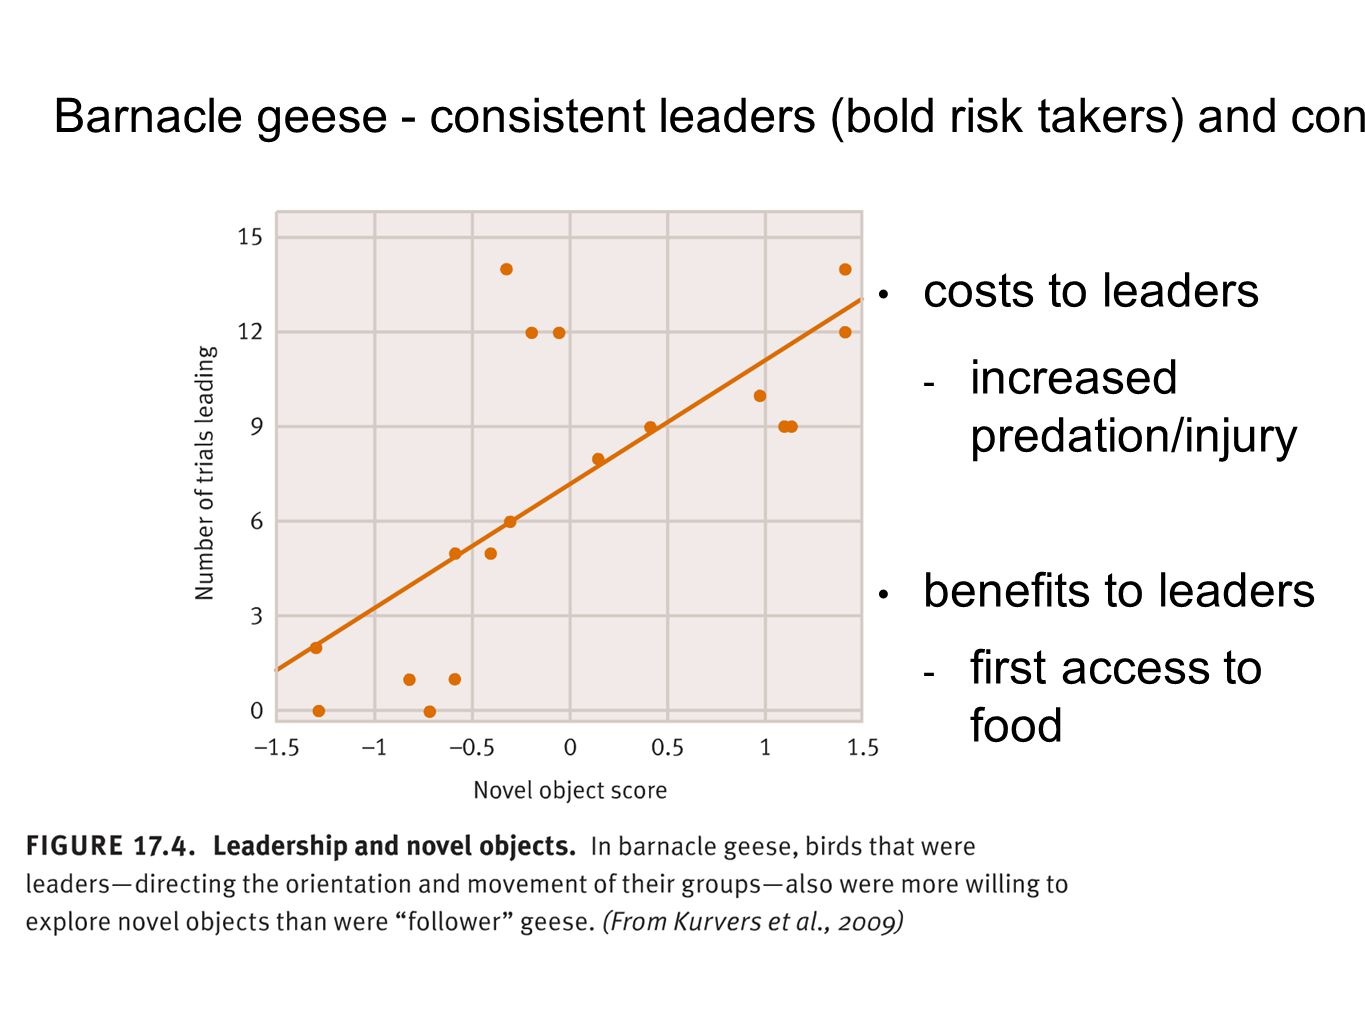 Barnacle geese - consistent leaders (bold risk takers) and consistent followers (Kurvers et al.